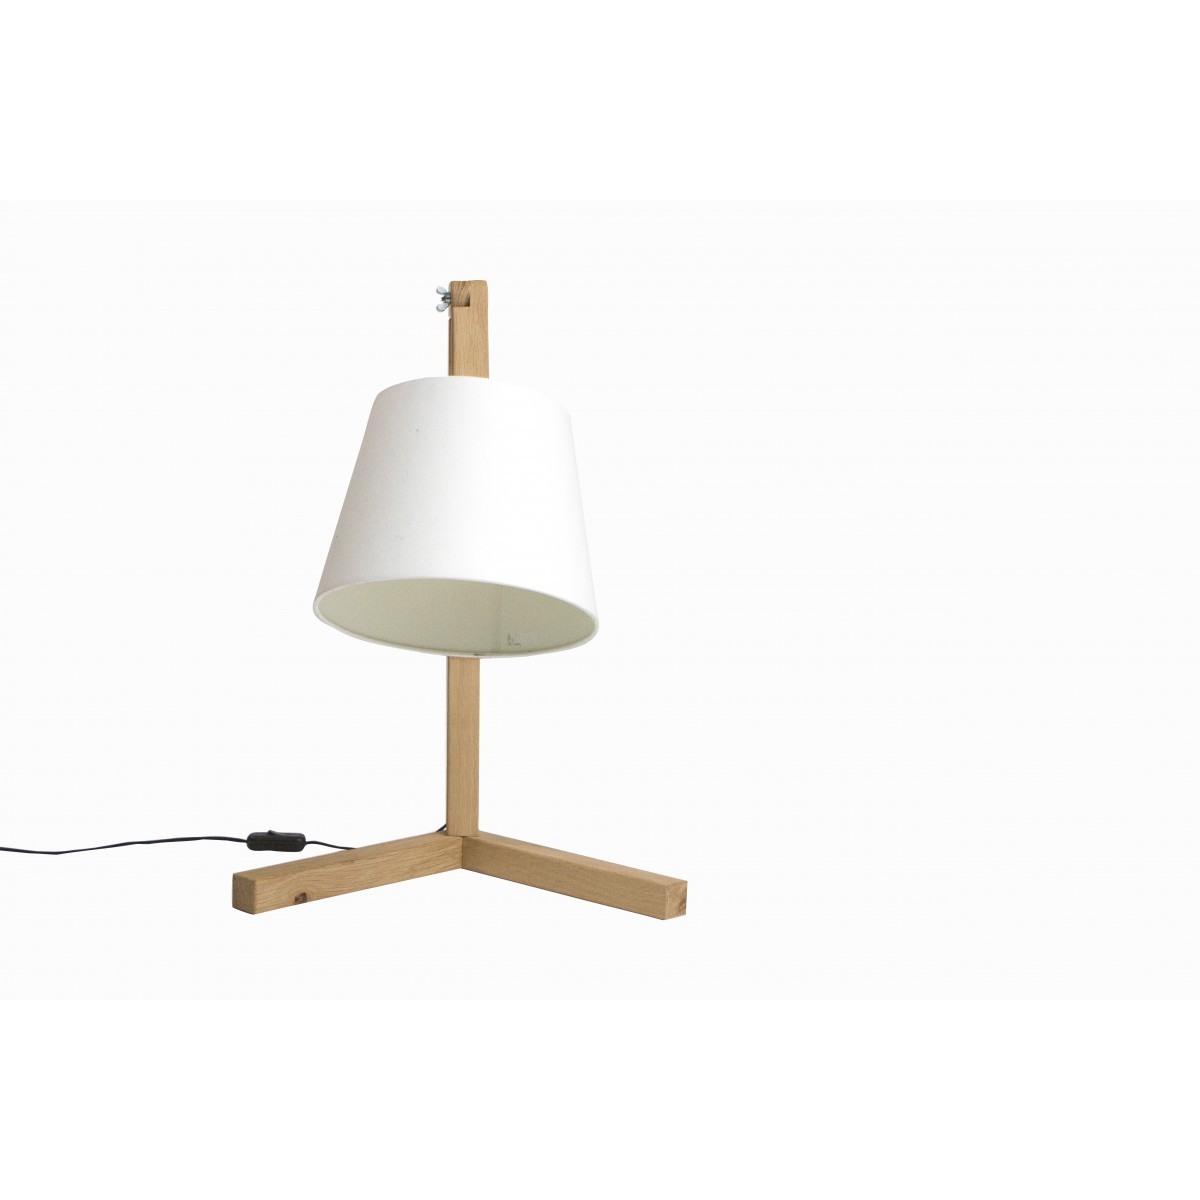 Lampe sur pied design scandinave en bois oud s sign e bellila for Lampe a pied design